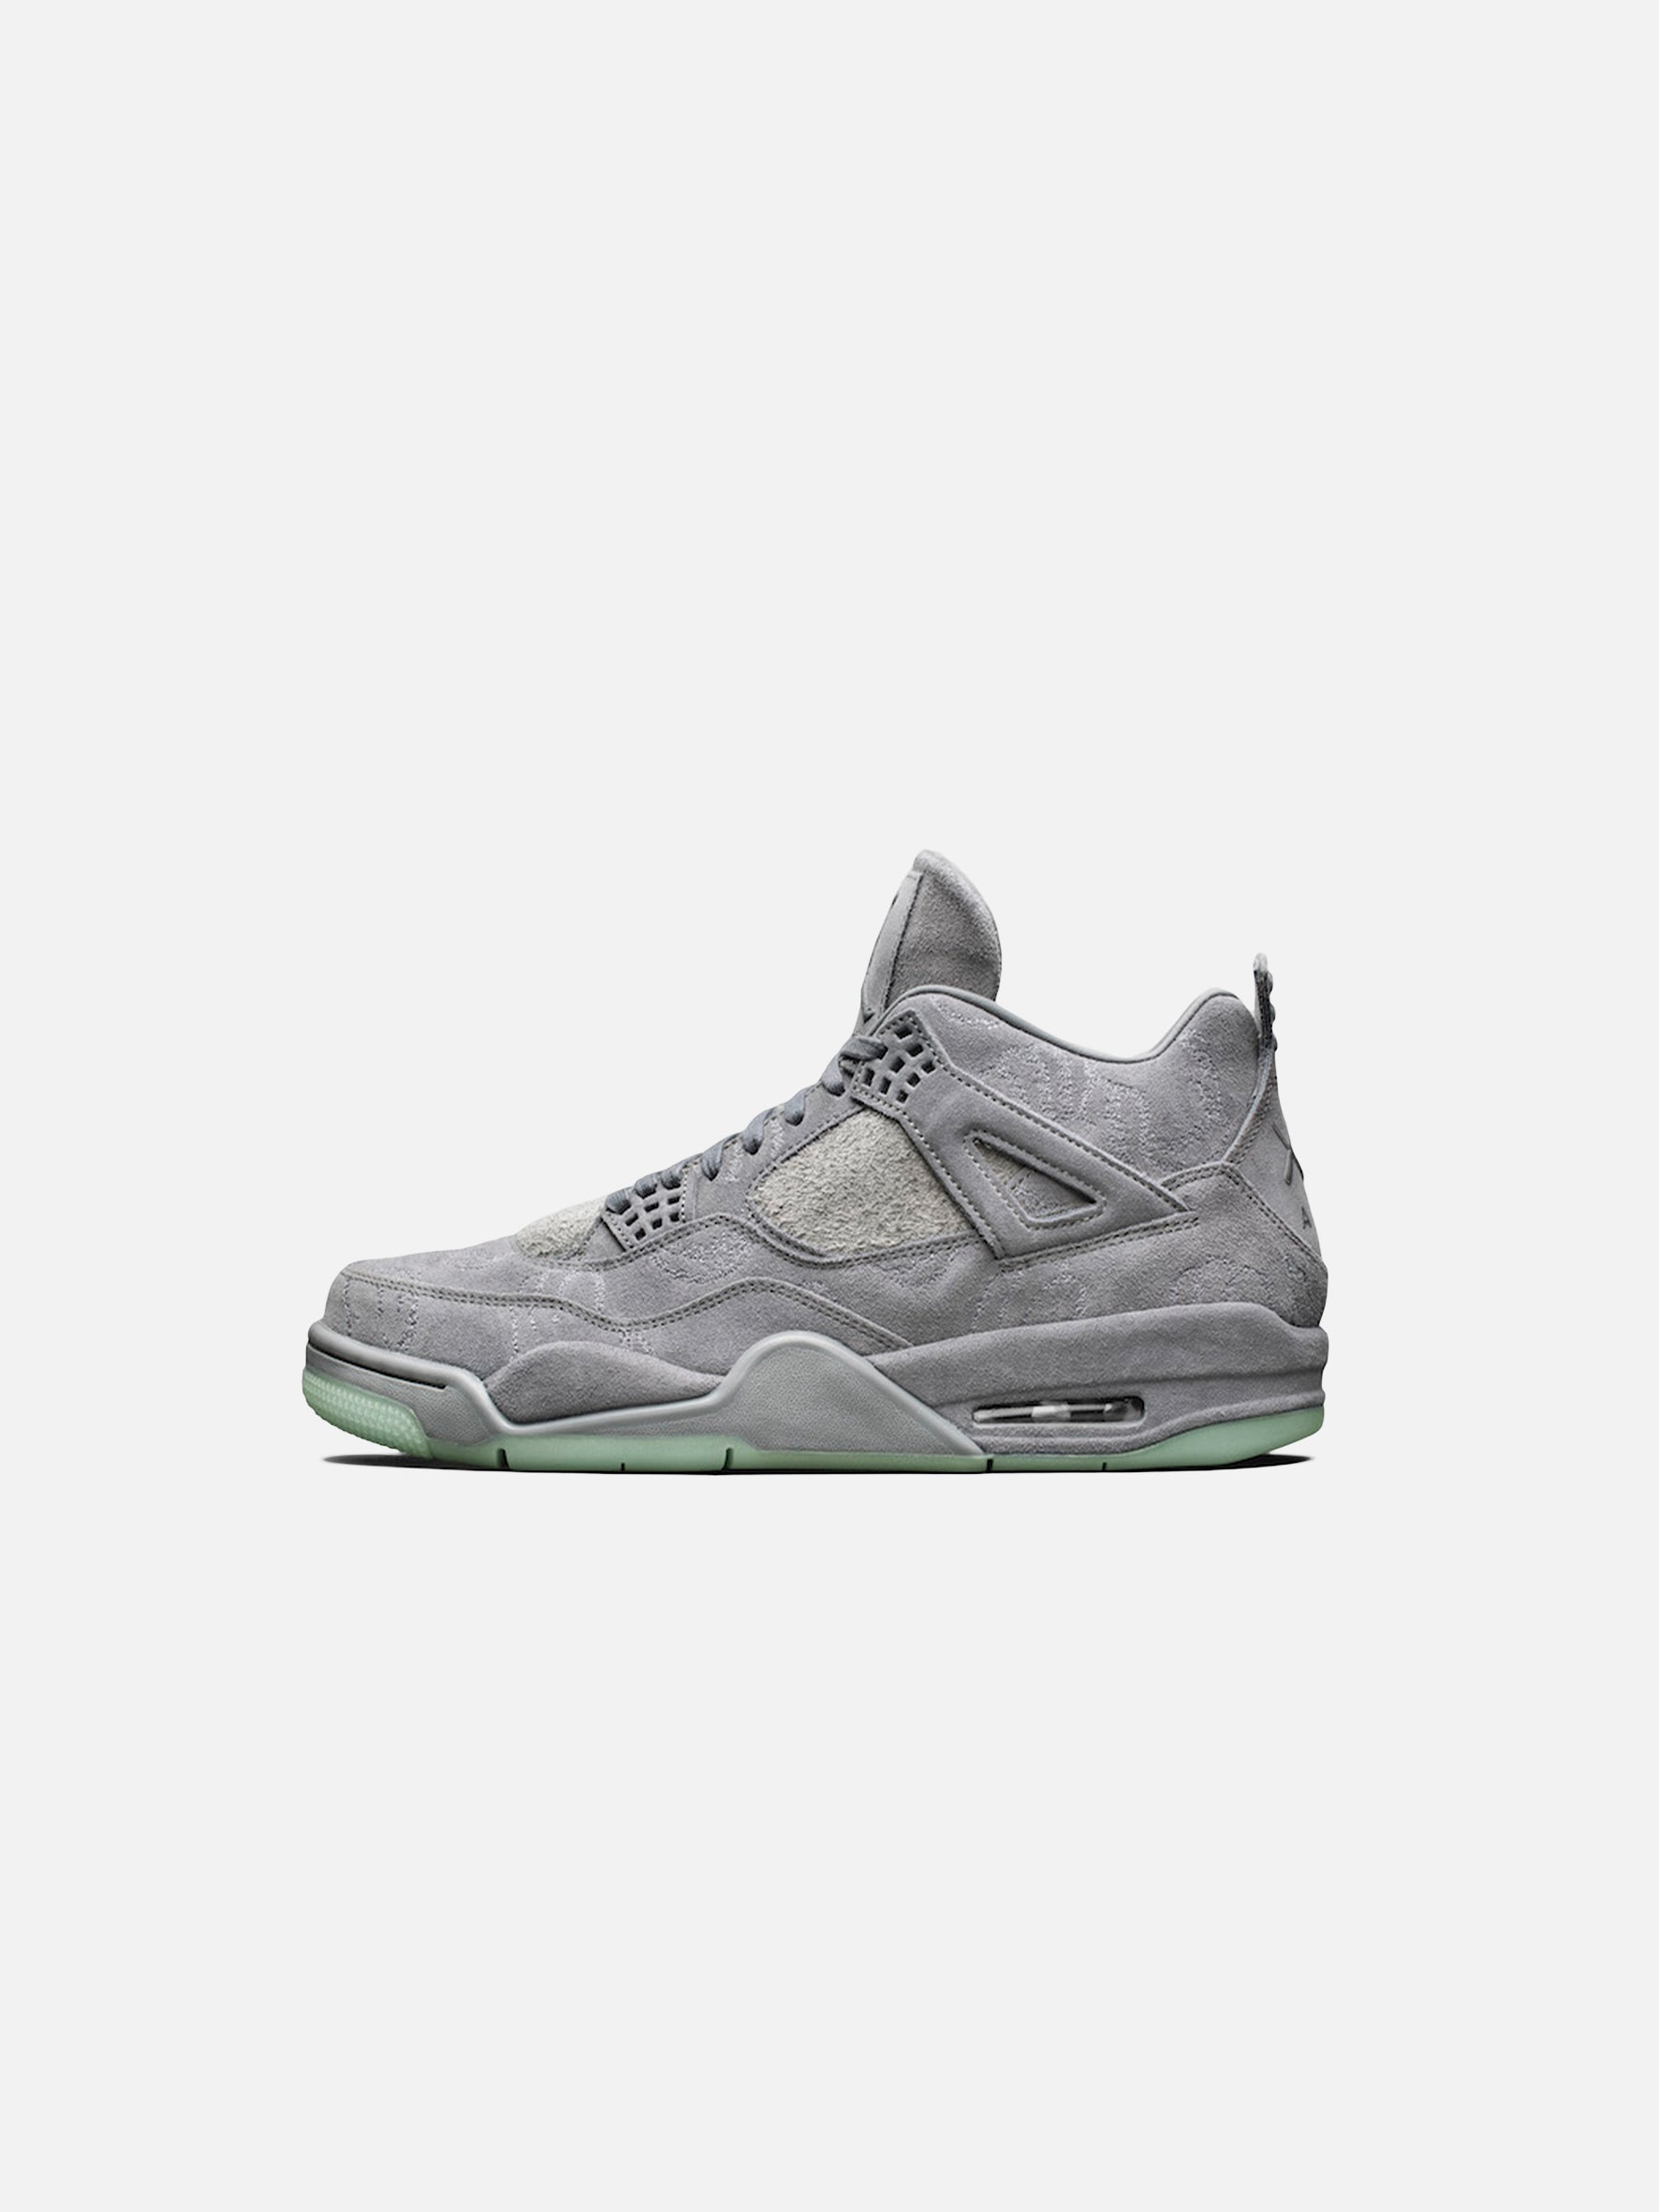 Nike Air Jordan IV KAWS Cool Grey